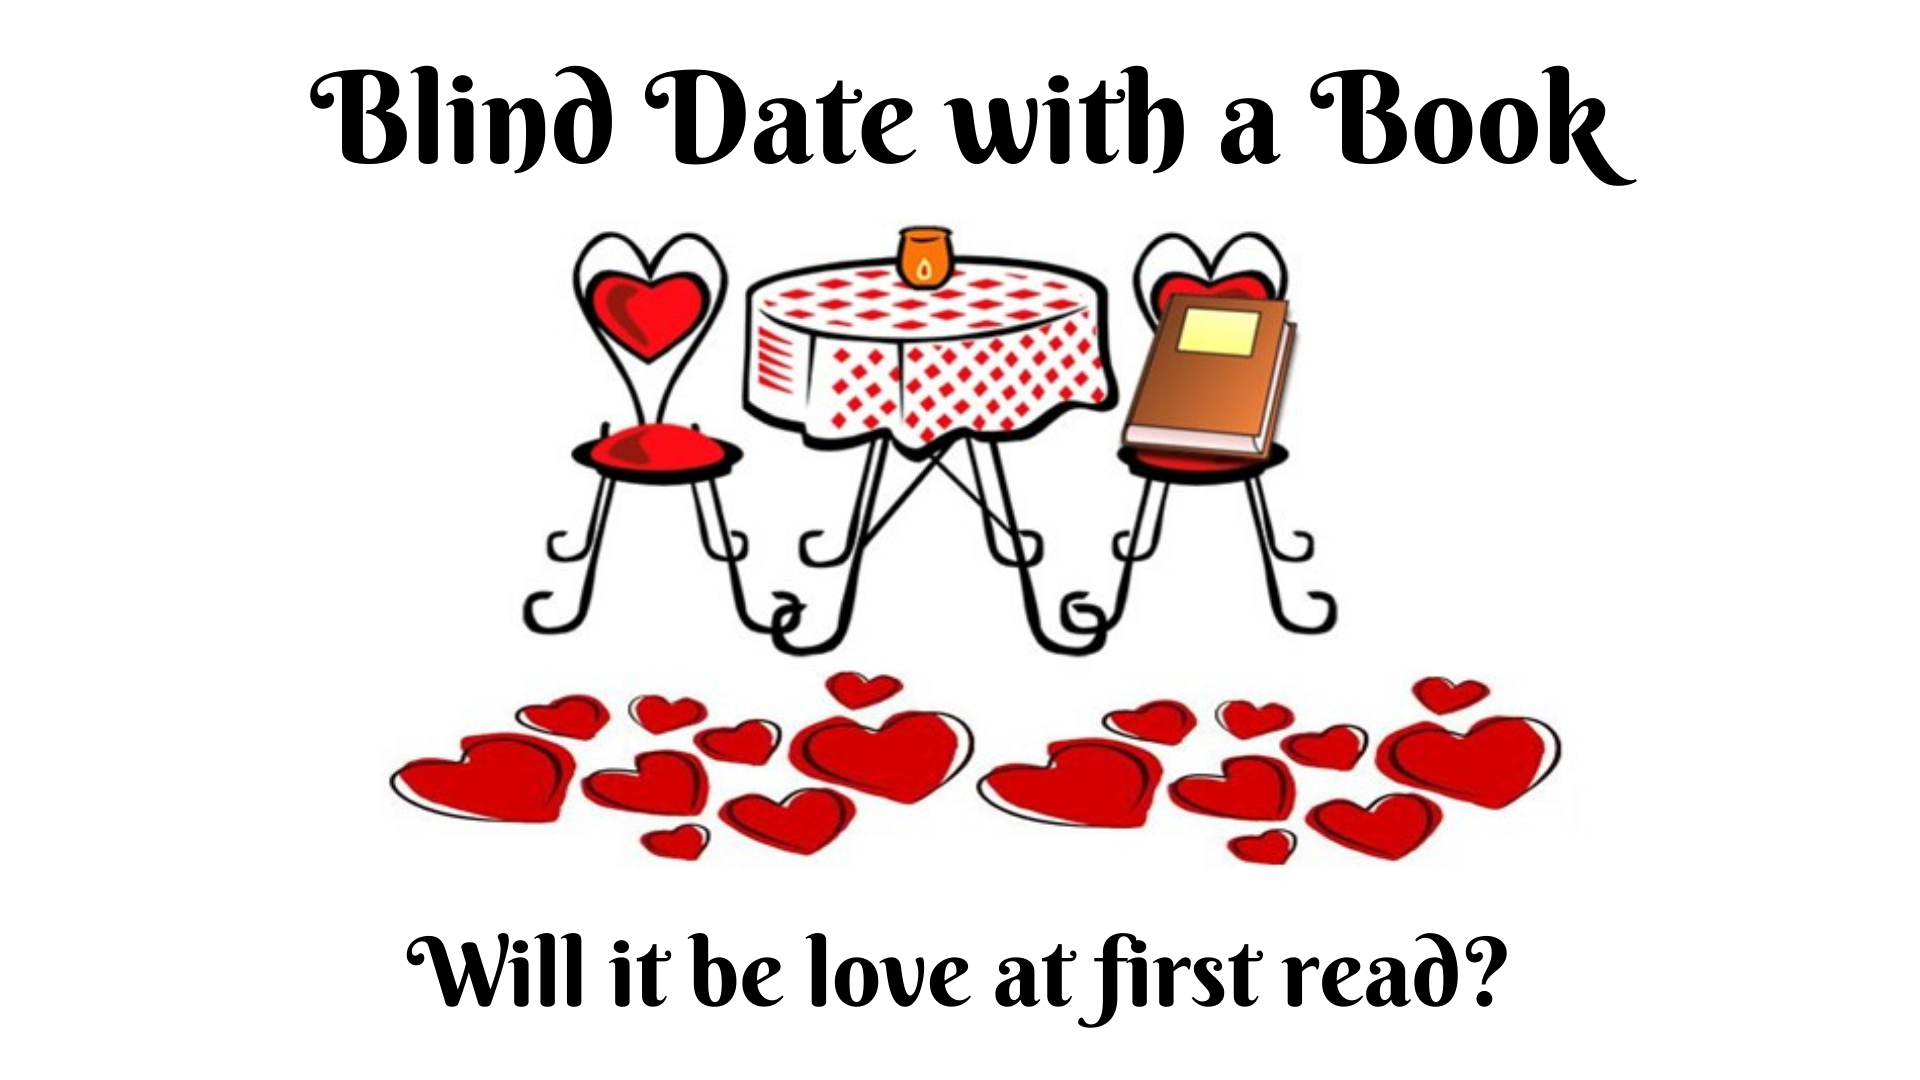 a small table with two chairs; a book sits on one chair; red hearts are scattered below the table